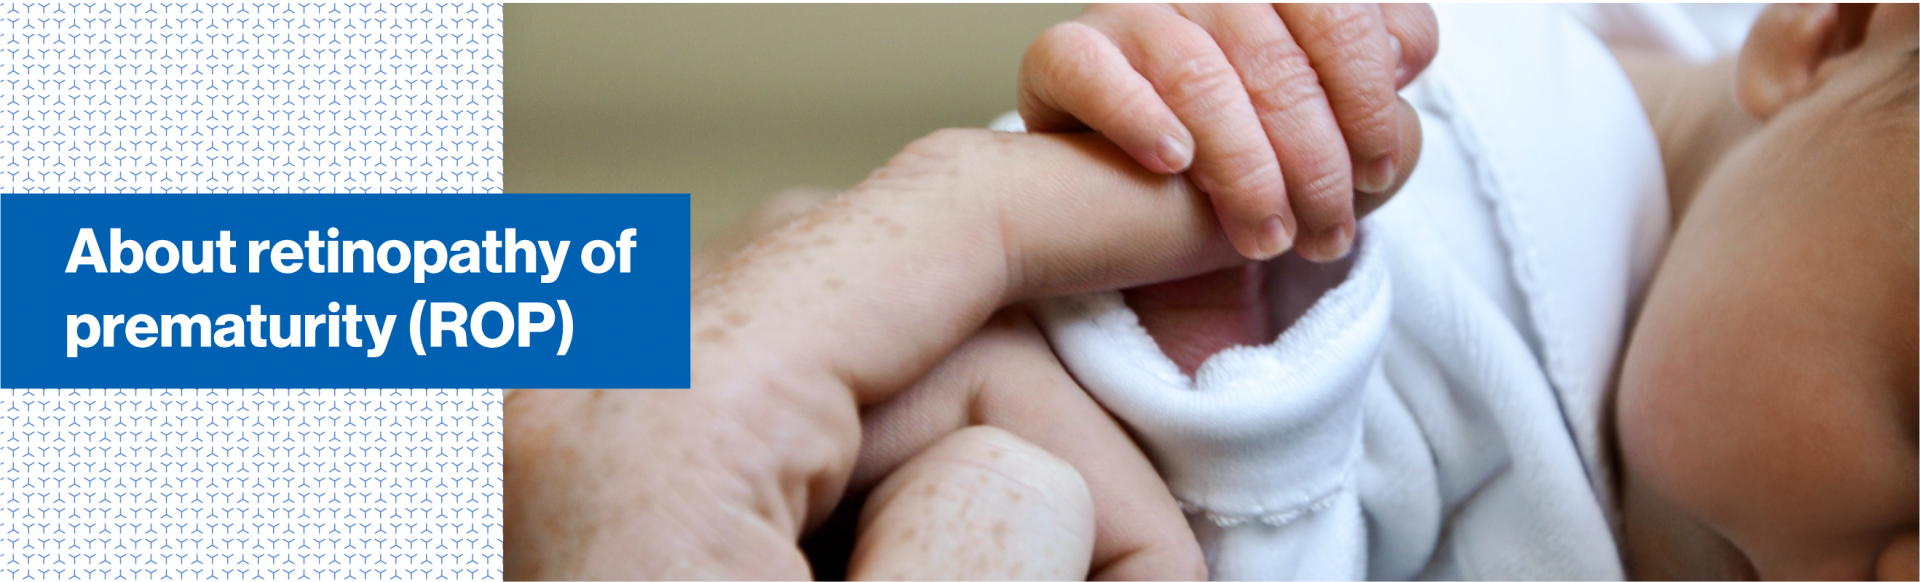 Top banner. About retinopathy of prematurity (ROP)